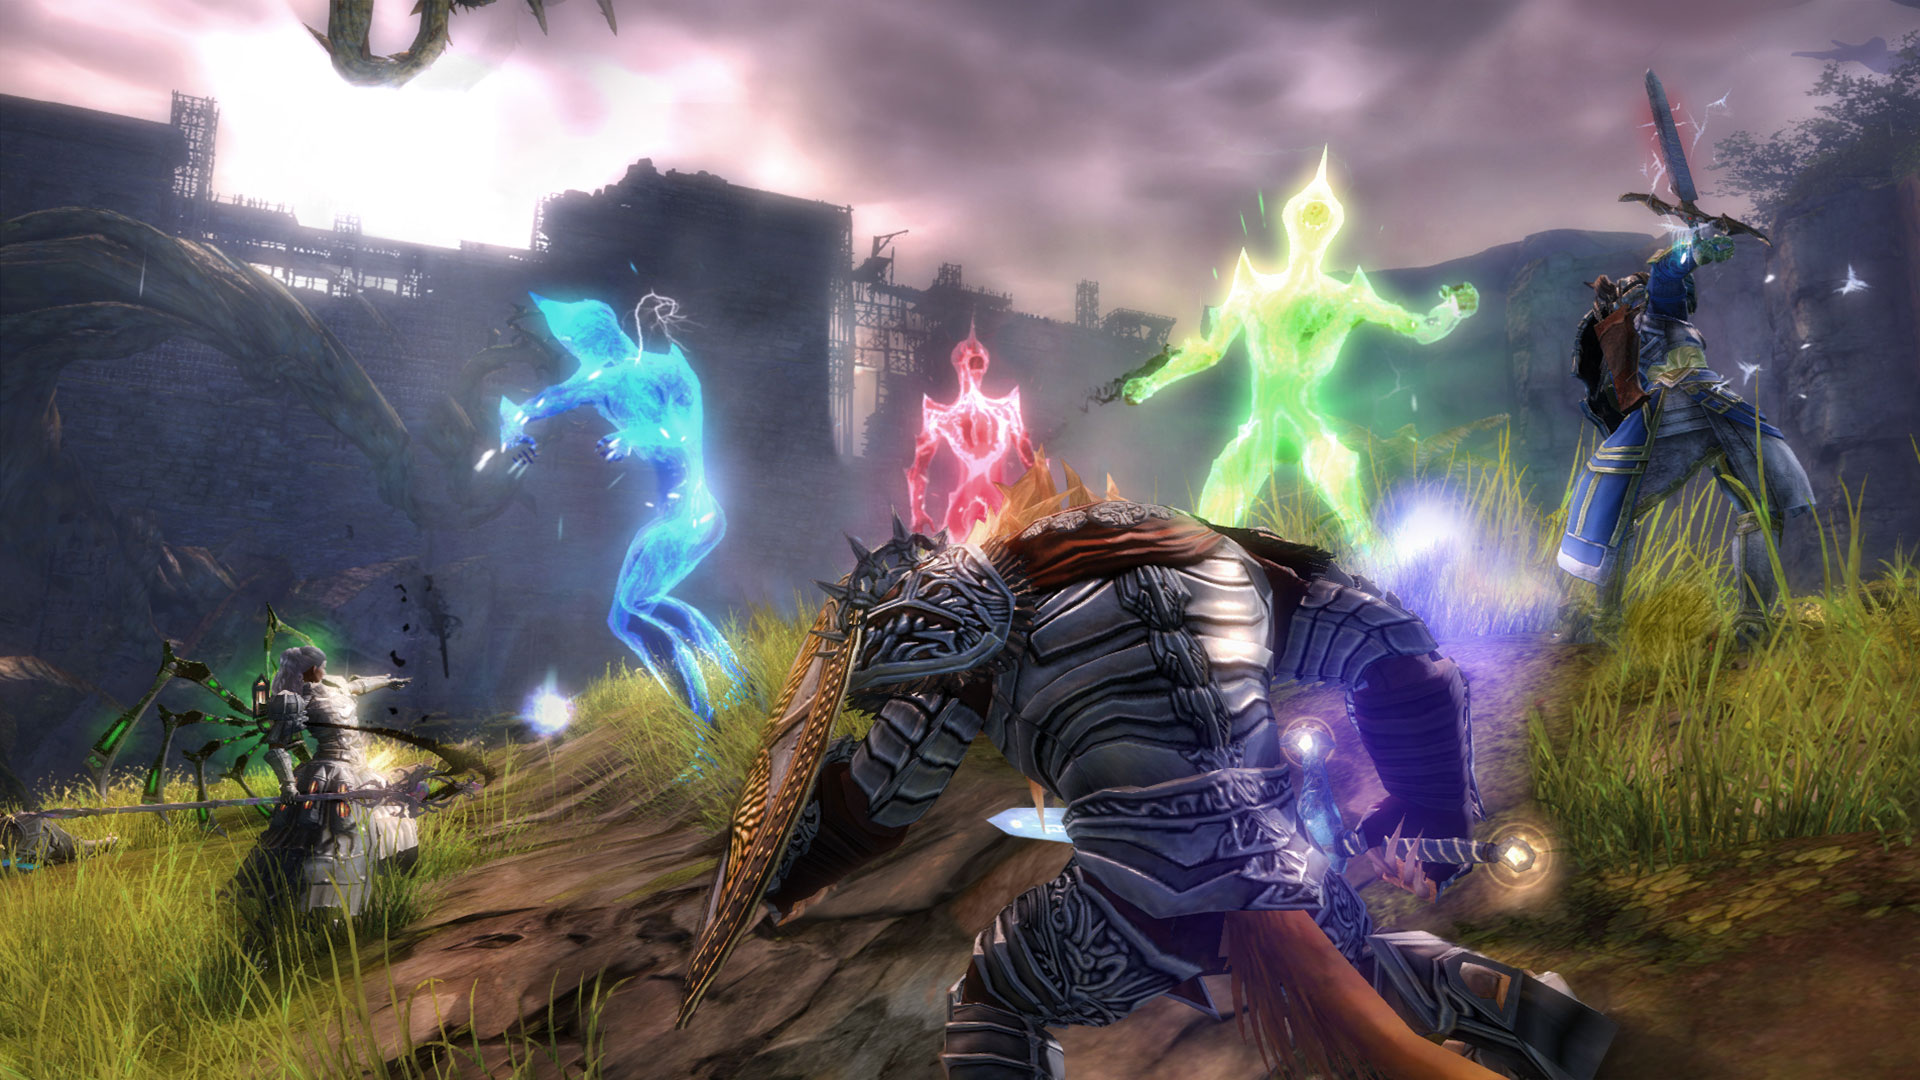 engineer guildwars2com - photo #19